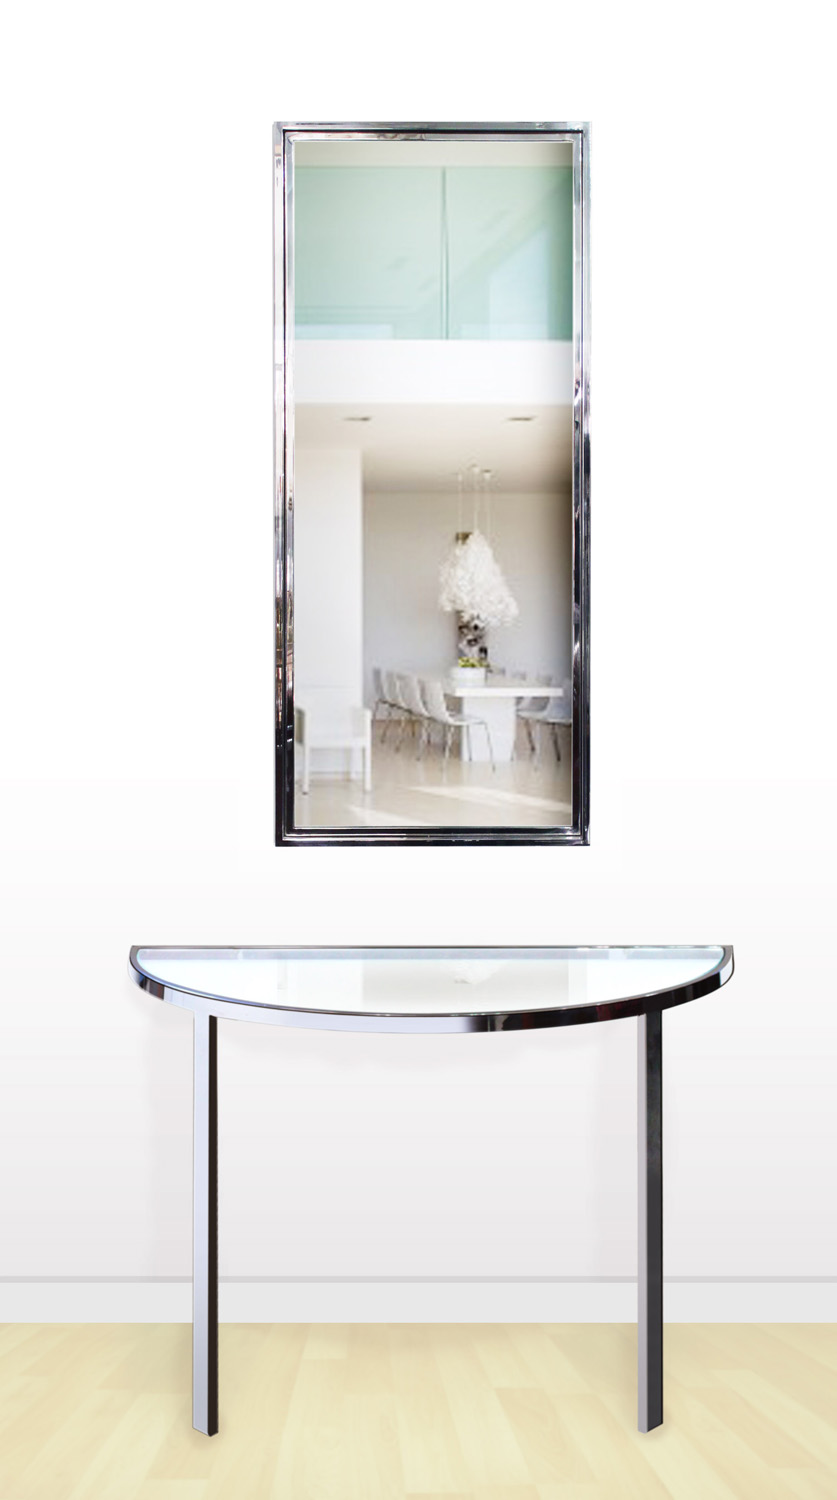 Probber 65 polished steel console+mirror console70 hires.jpg